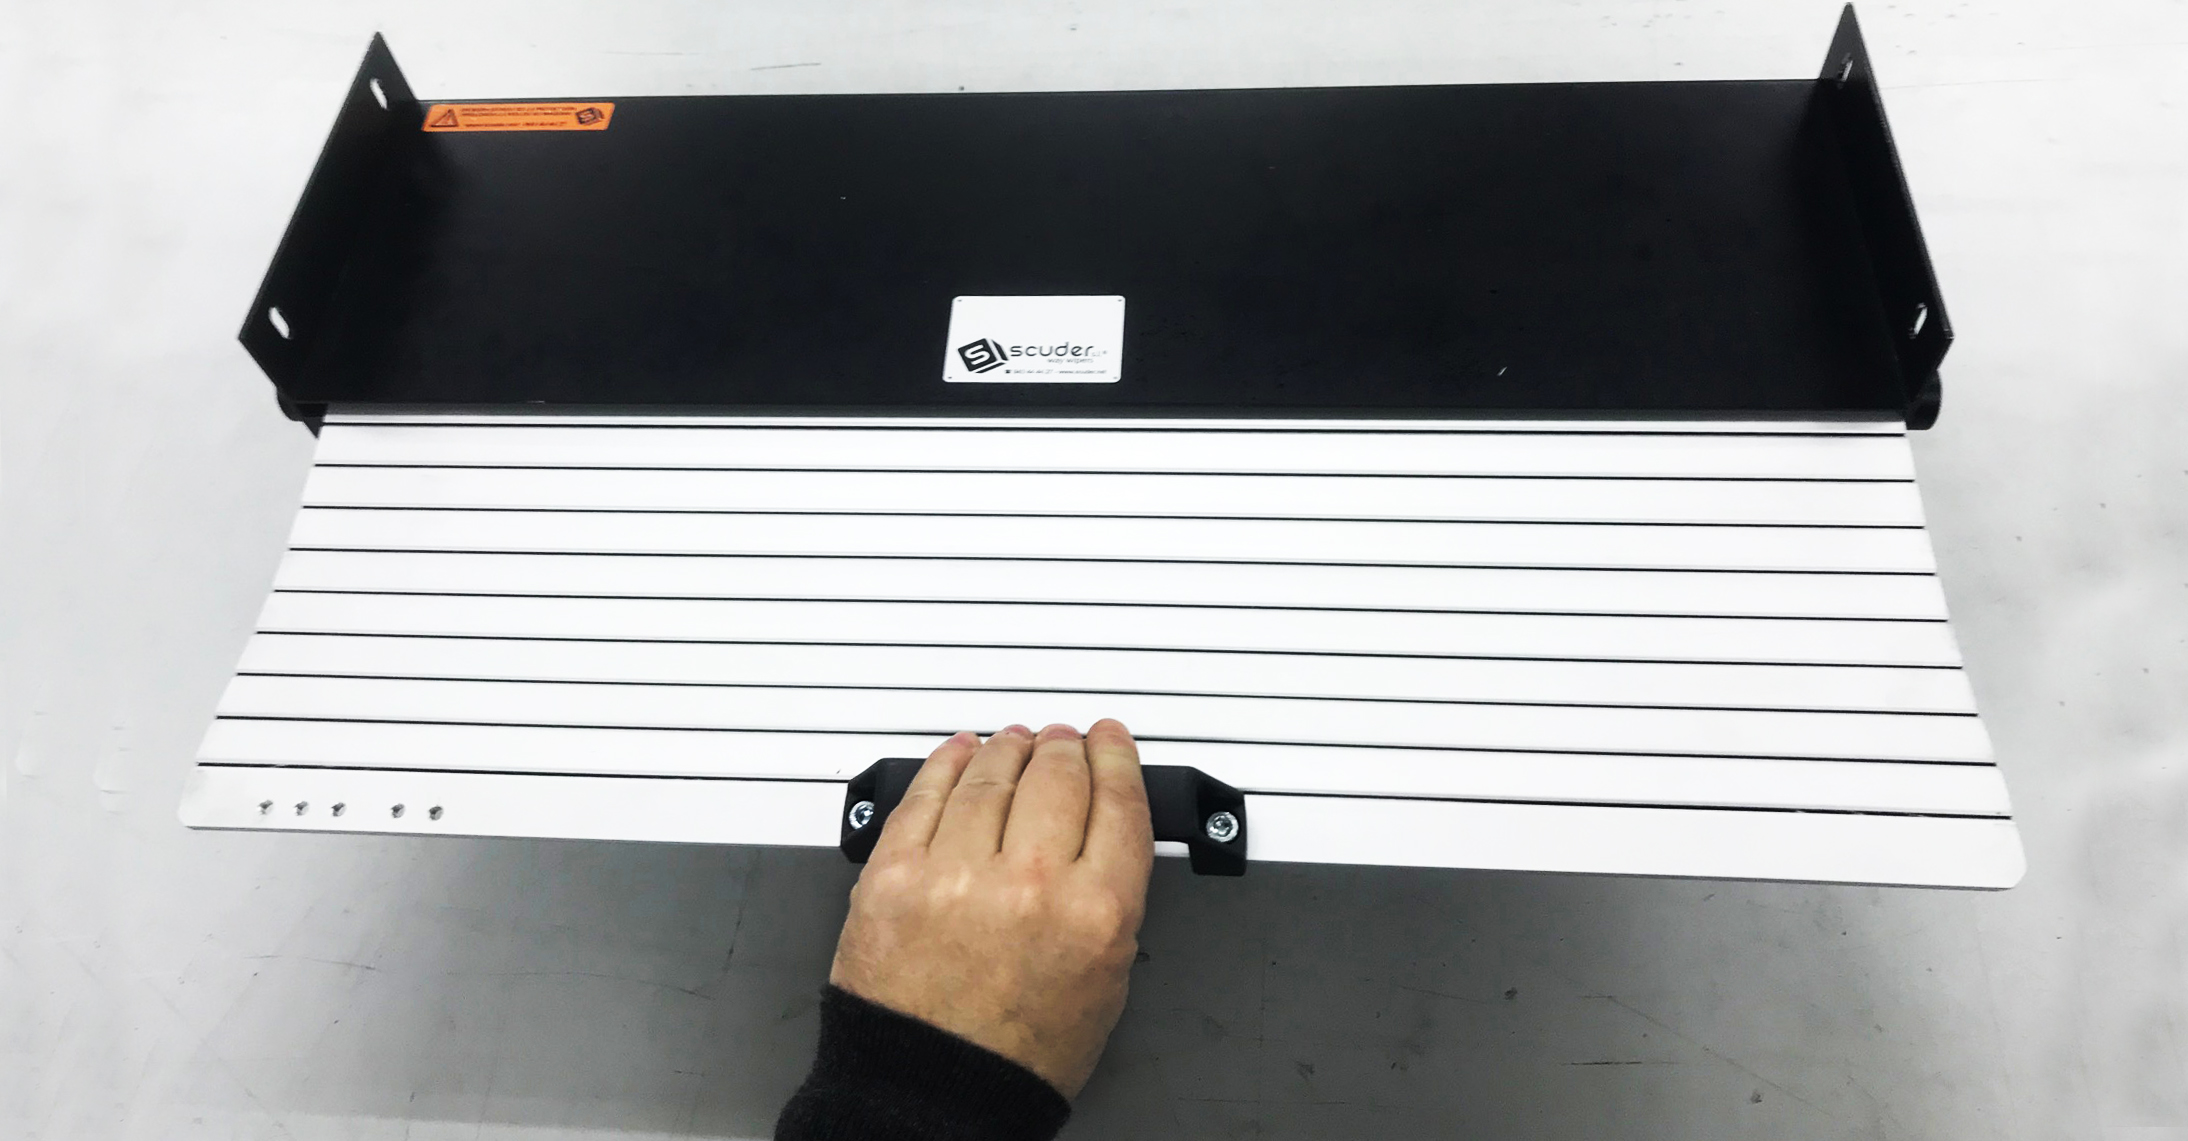 Blind with manually-opened reel box